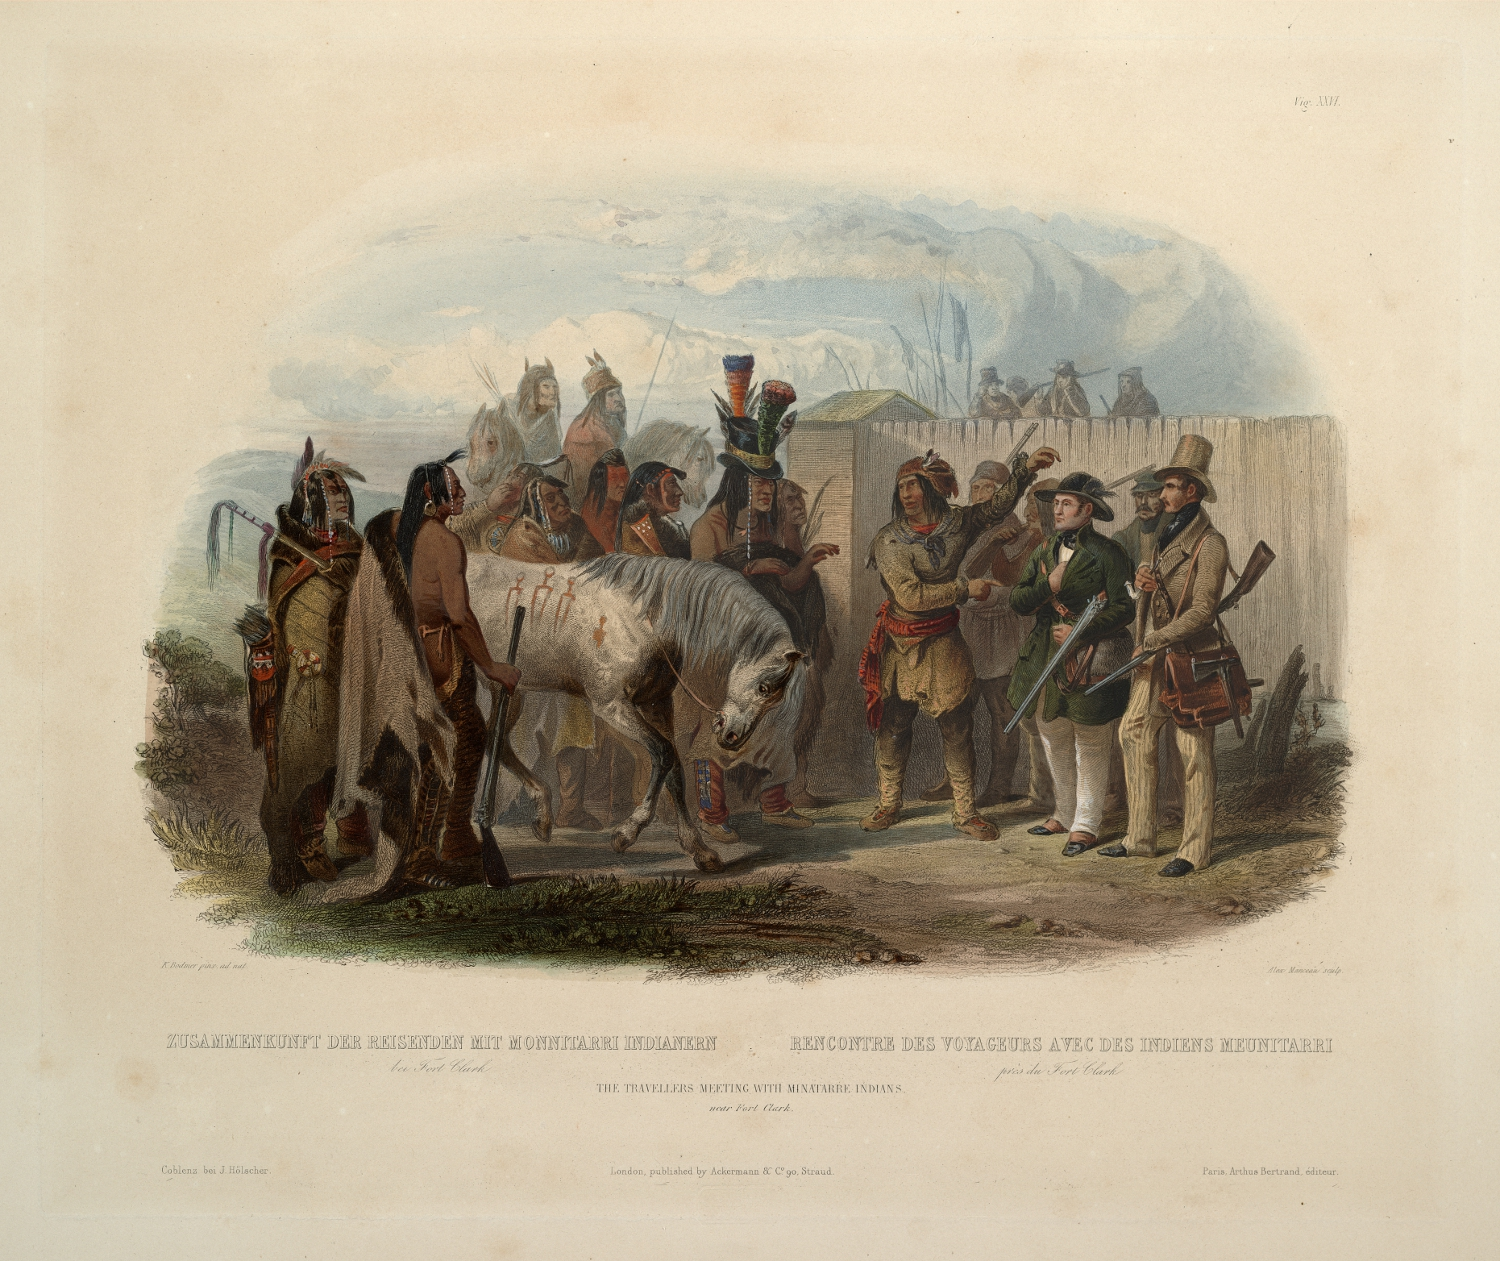 Karl Bodmer. This print demonstrates how Indians began incorporating Euro-American articles into their dress. From commons.wikimedia.org